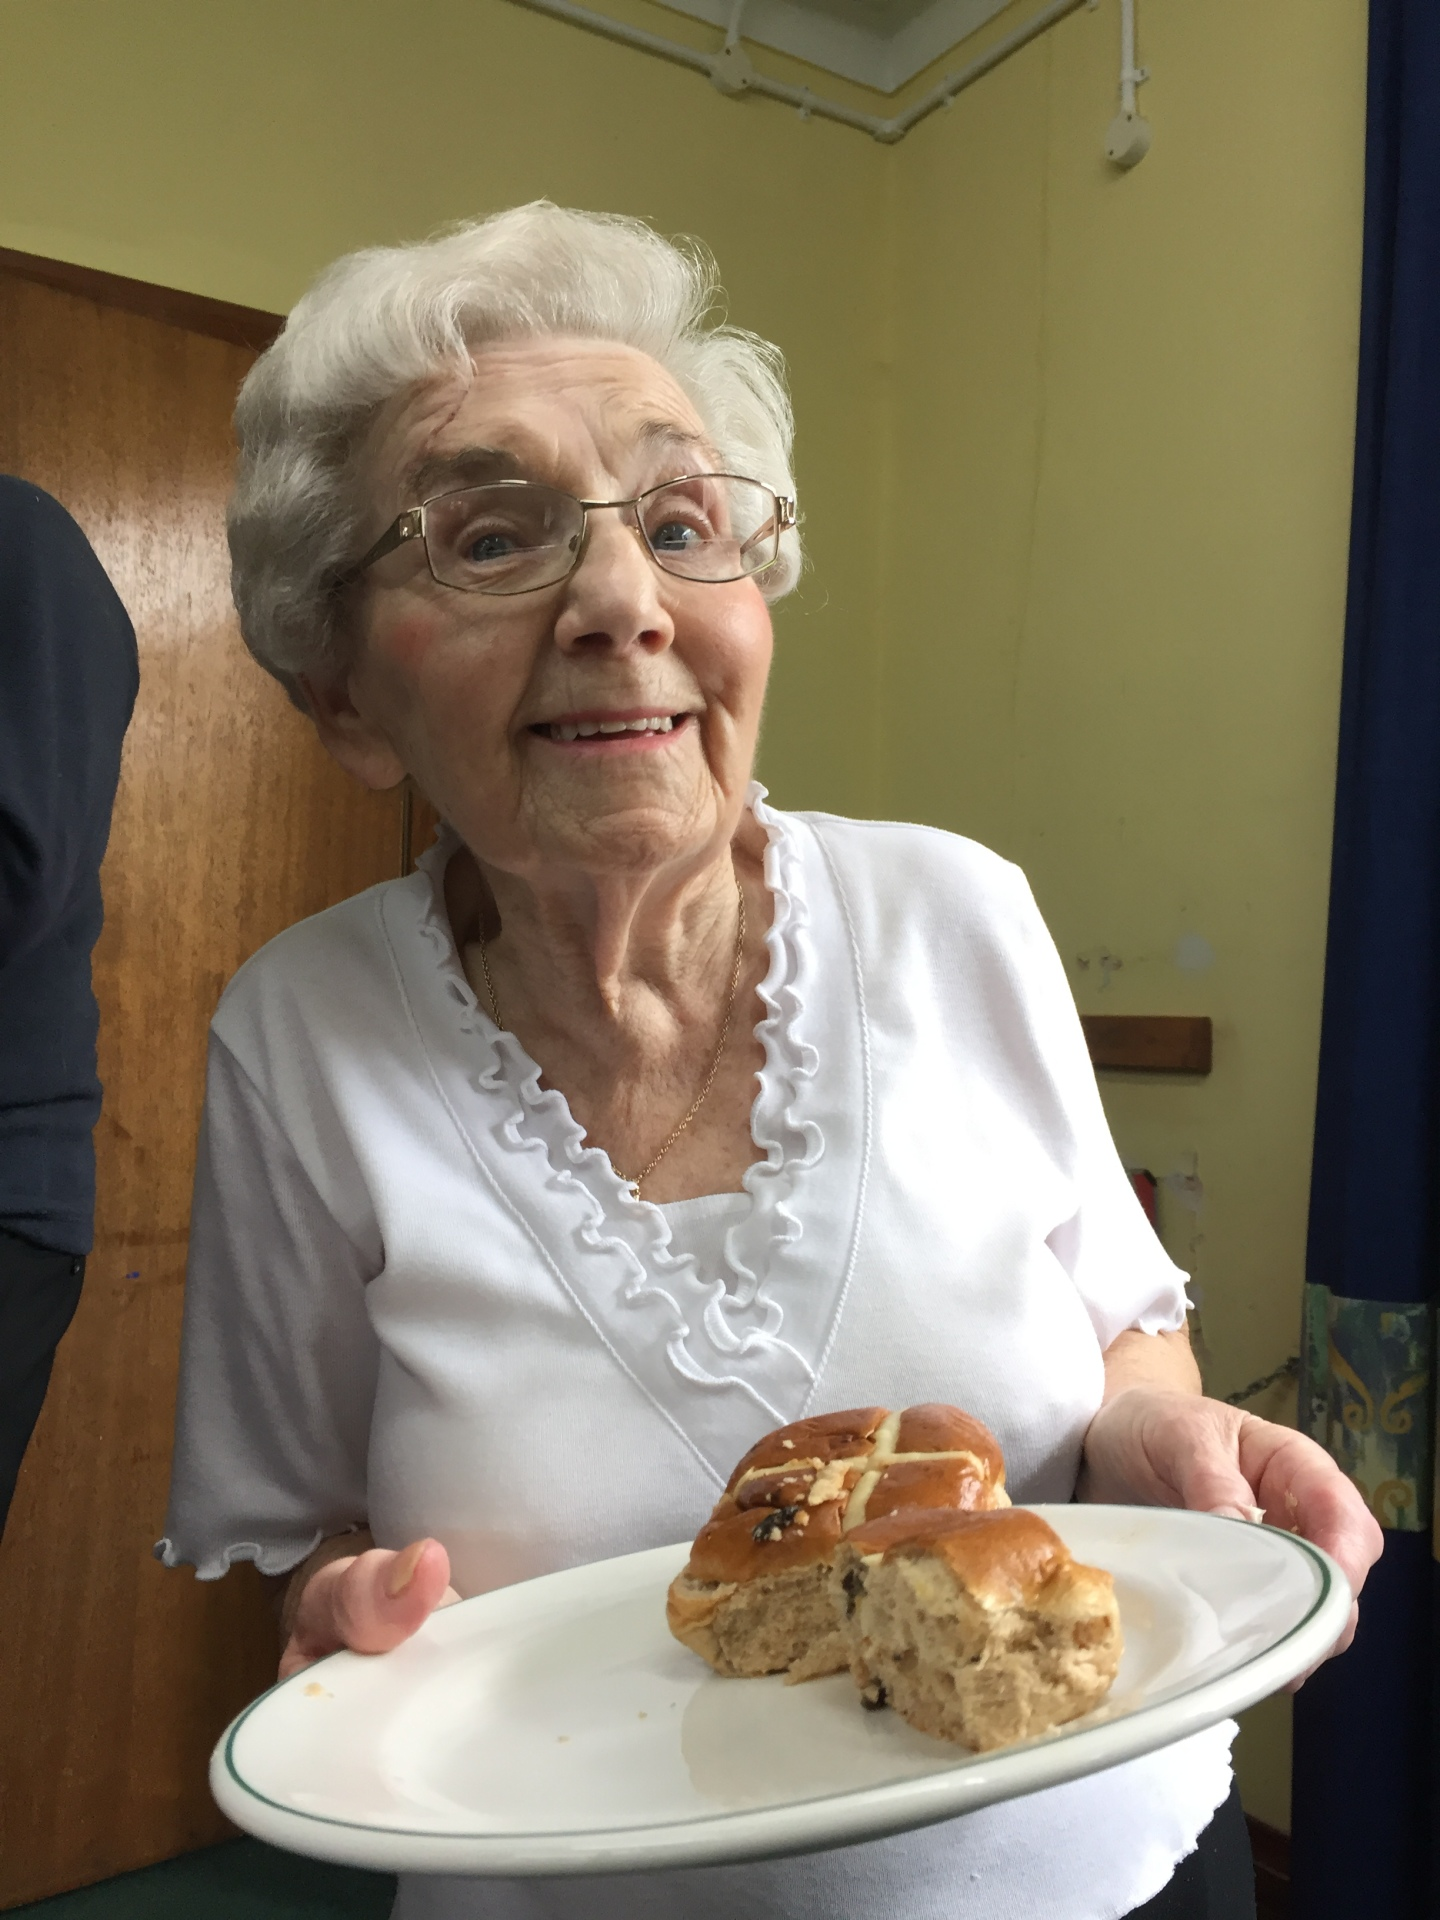 Back to the church hall for hot-cross buns